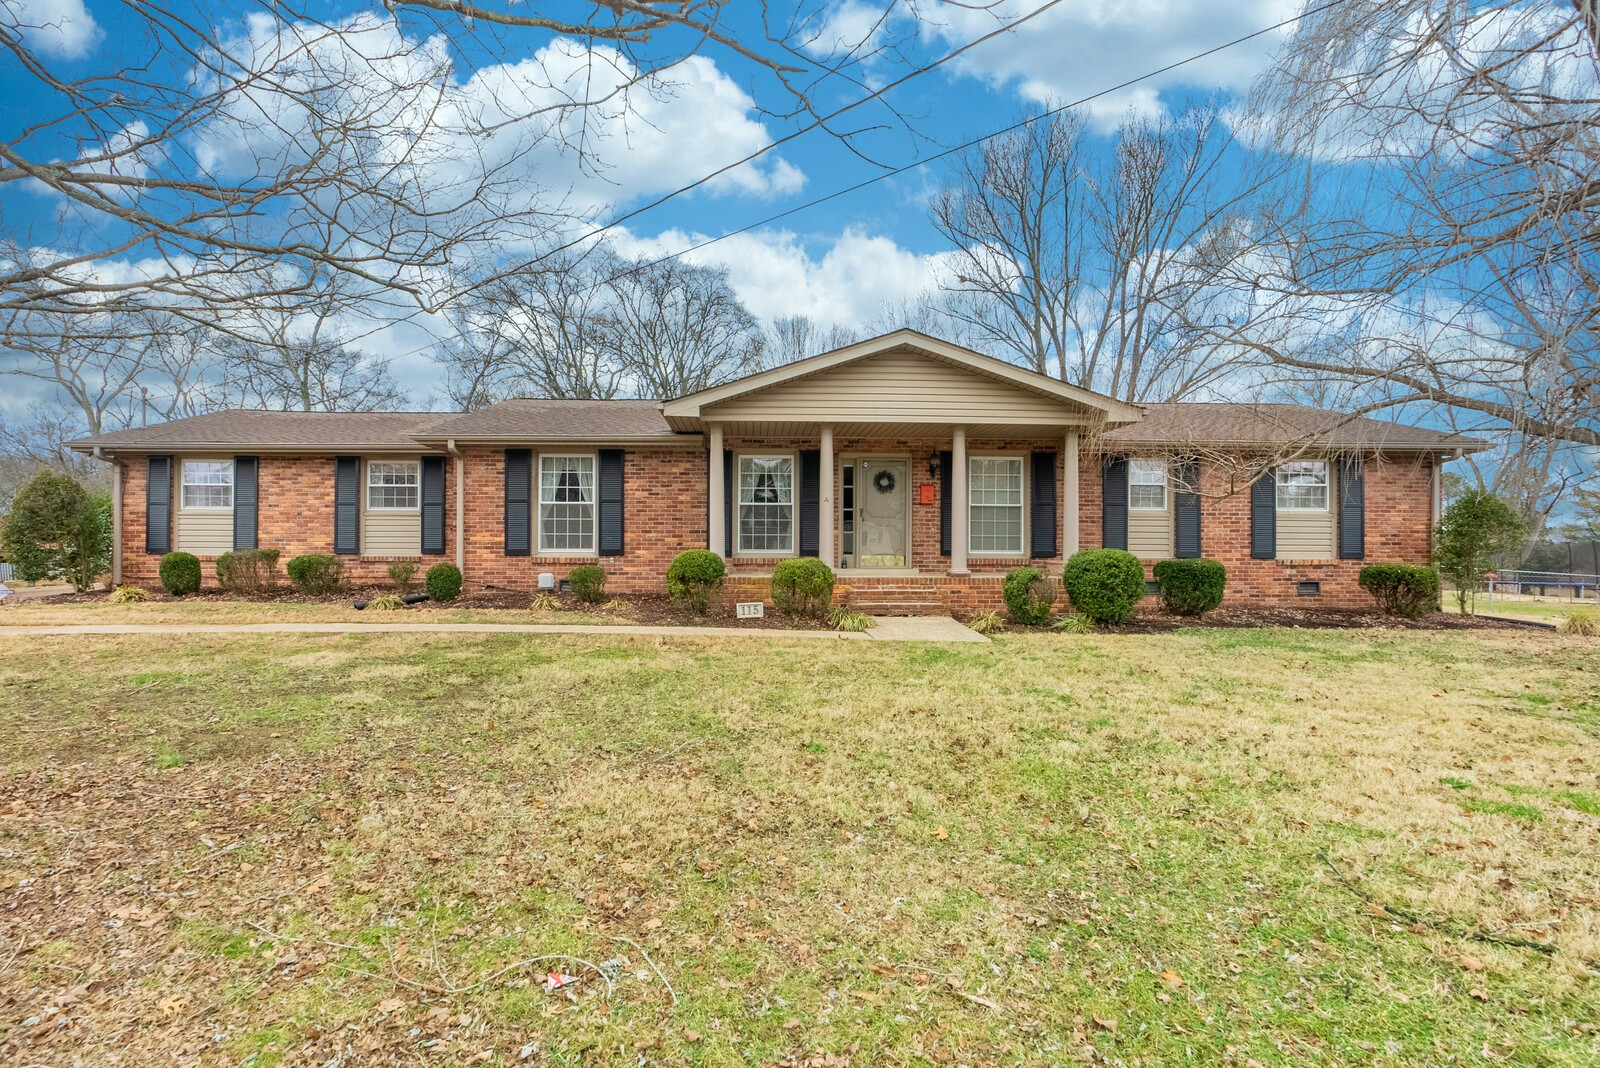 Amazing opportunity to own a well cared for single level brick ranch in Scottish Highlands. Close to everything you could ask for. Easy access to Viet Nam Vets, I65, Nashville, BNA airport, Streets of Indian Lake. Newer roof, HVAC, Gutters, & windows. Hardwoods, formal dining, brick fireplace, 4 car attached carport, built in storage, fenced yard.